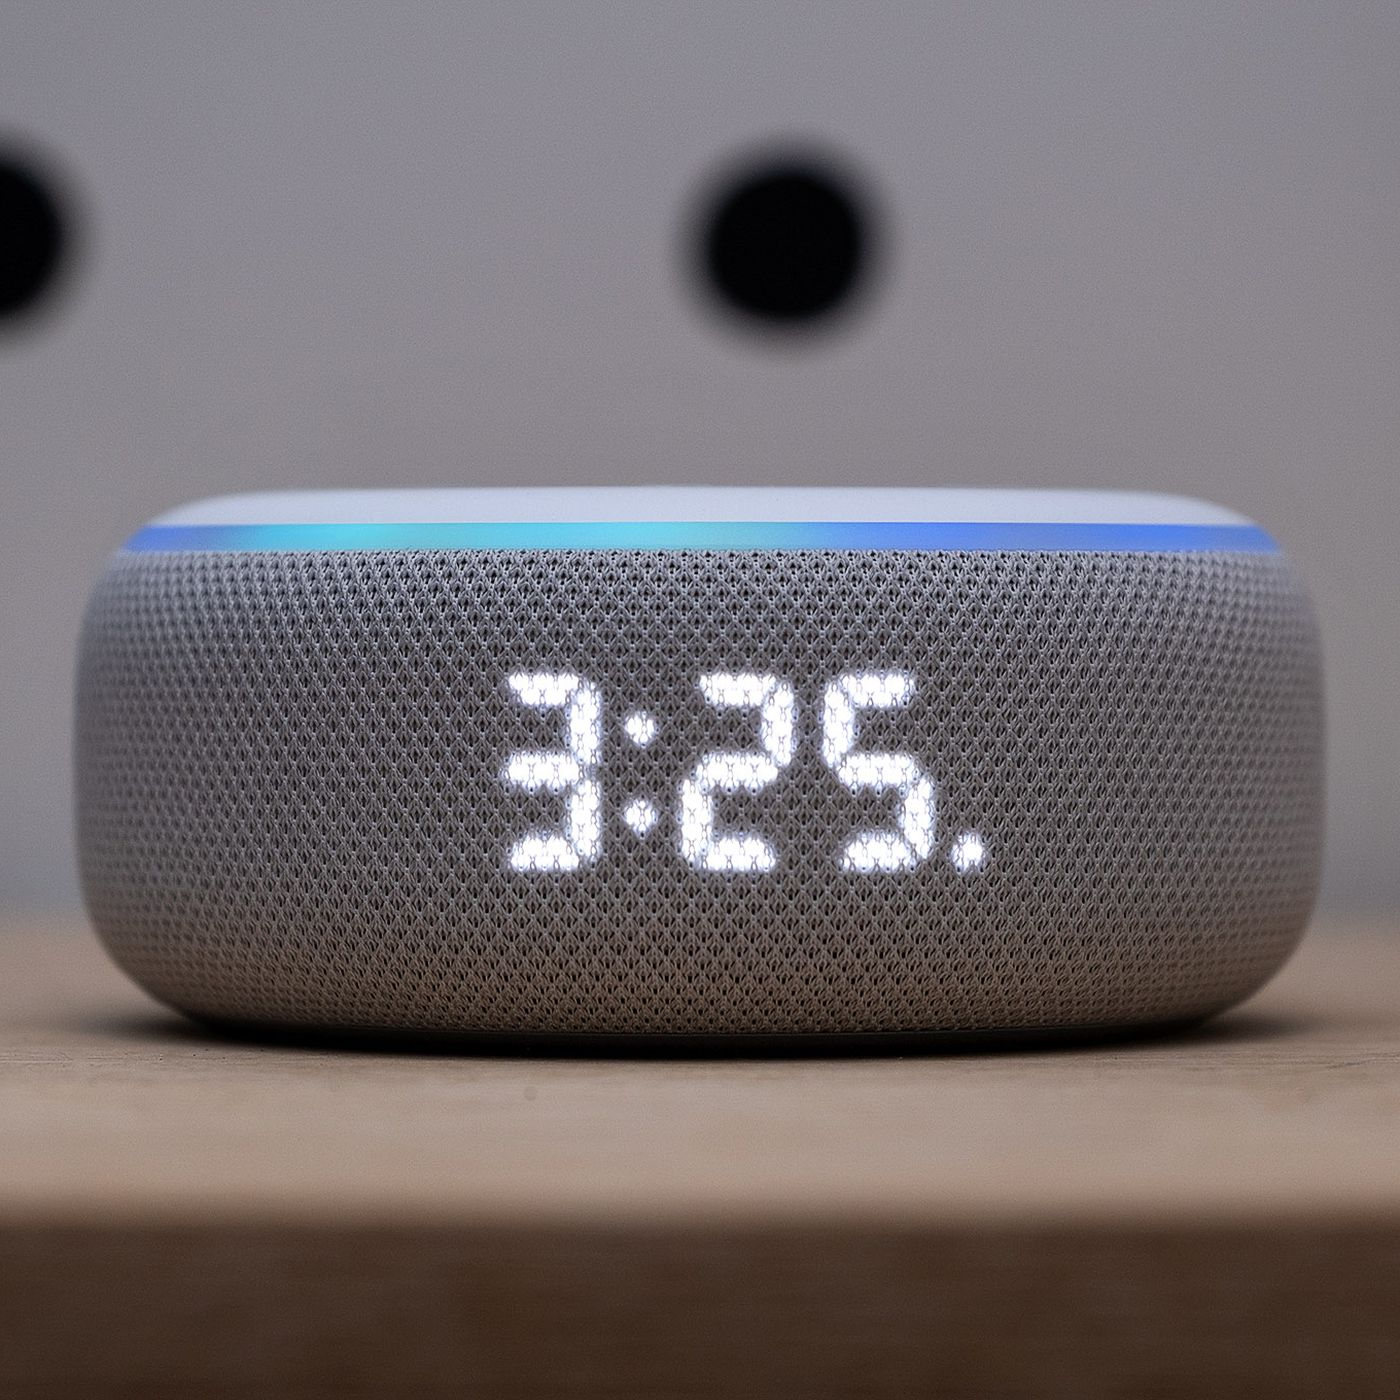 Amazon Echo Dot with clock review: time is on its side - The Verge